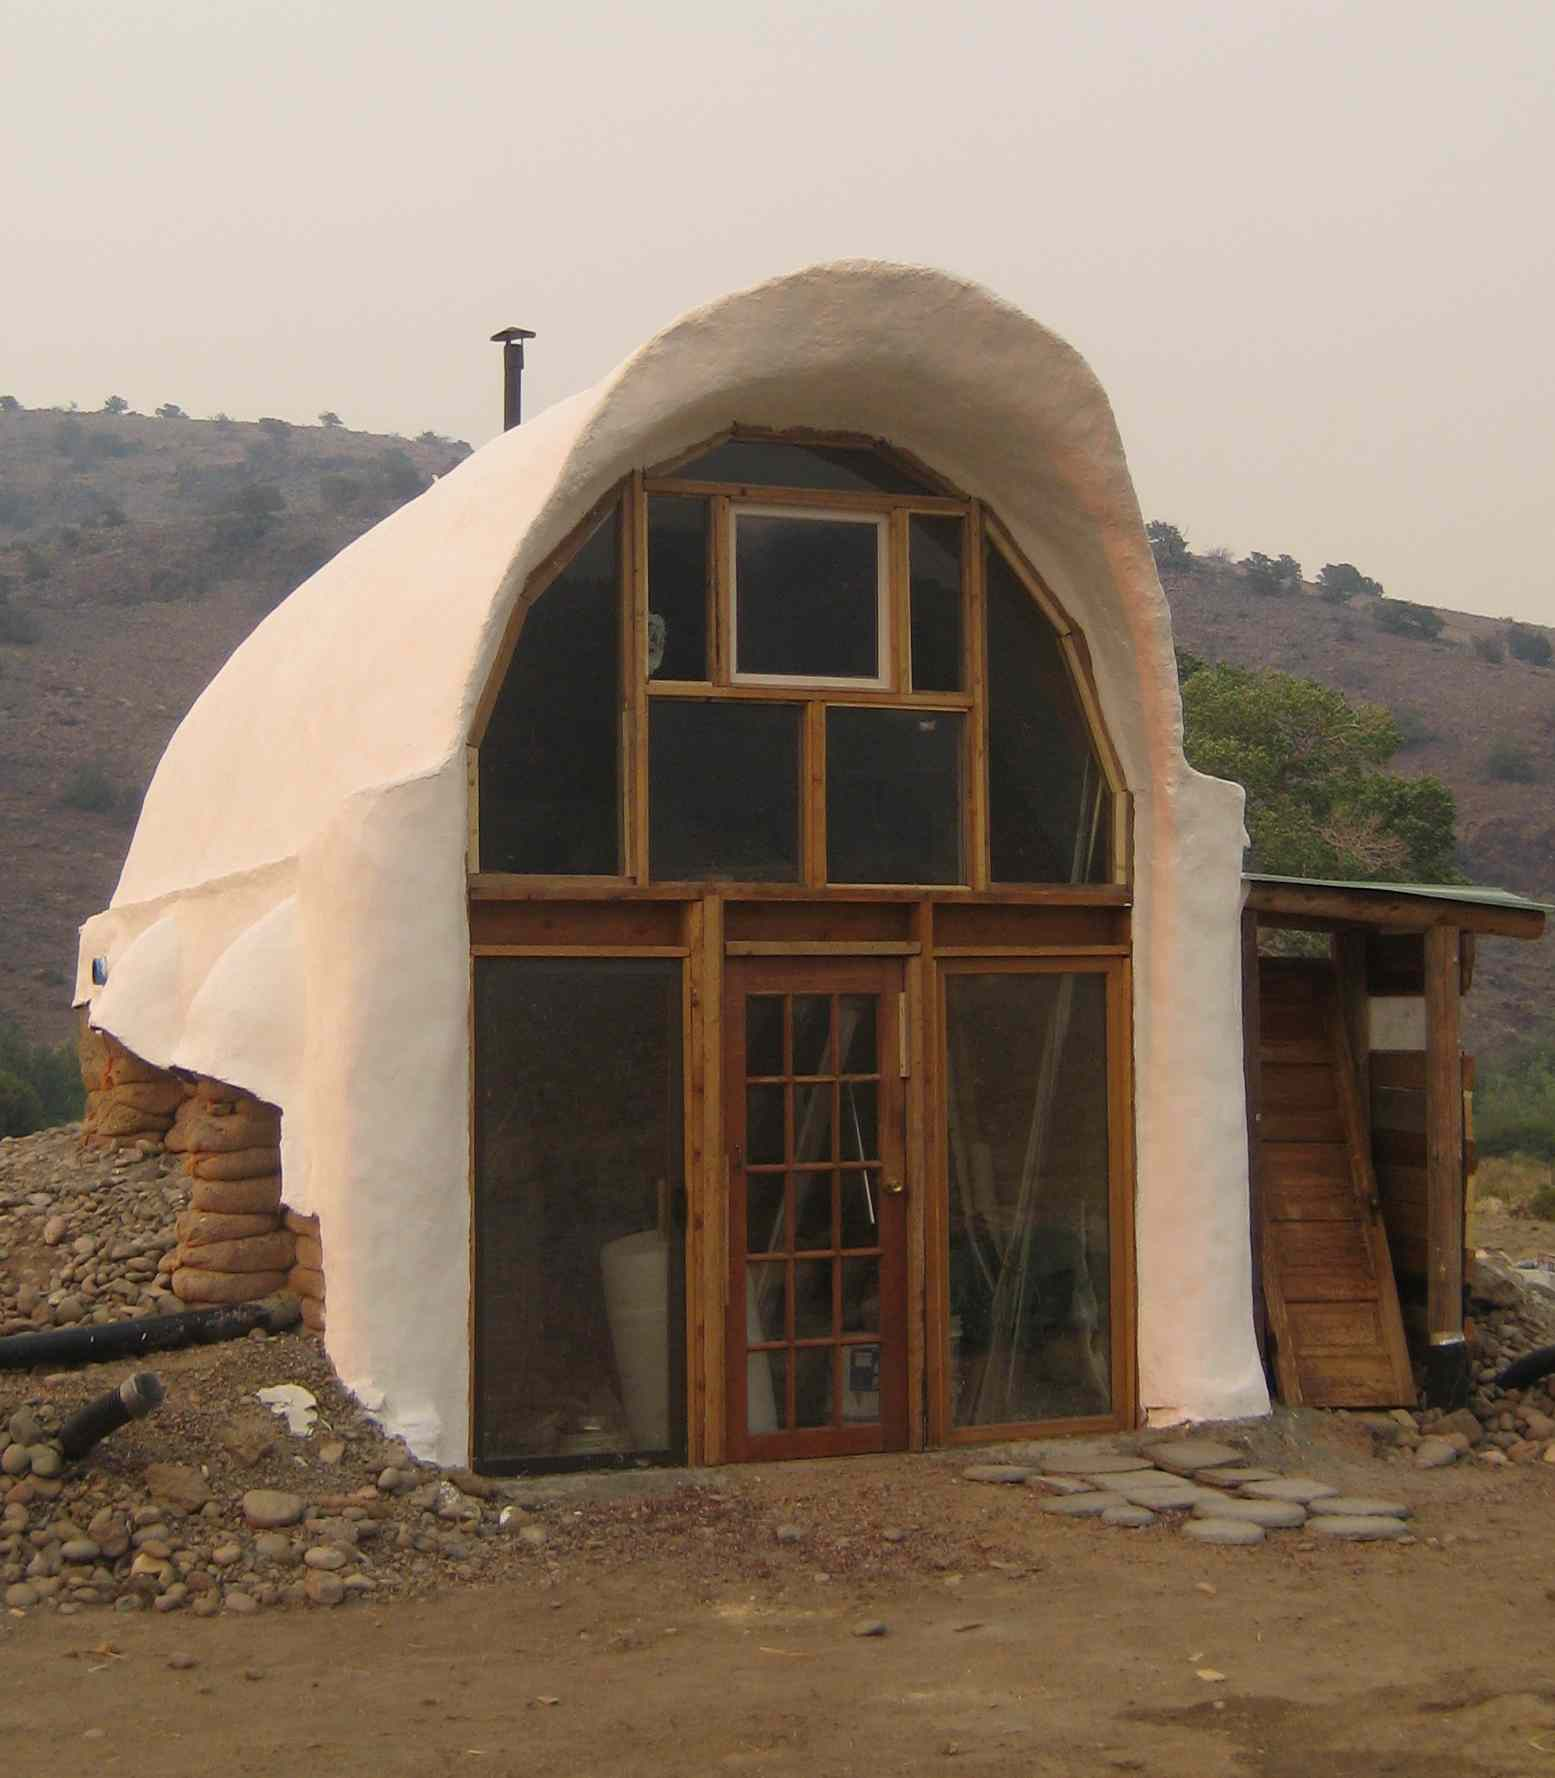 The Regenerative Home